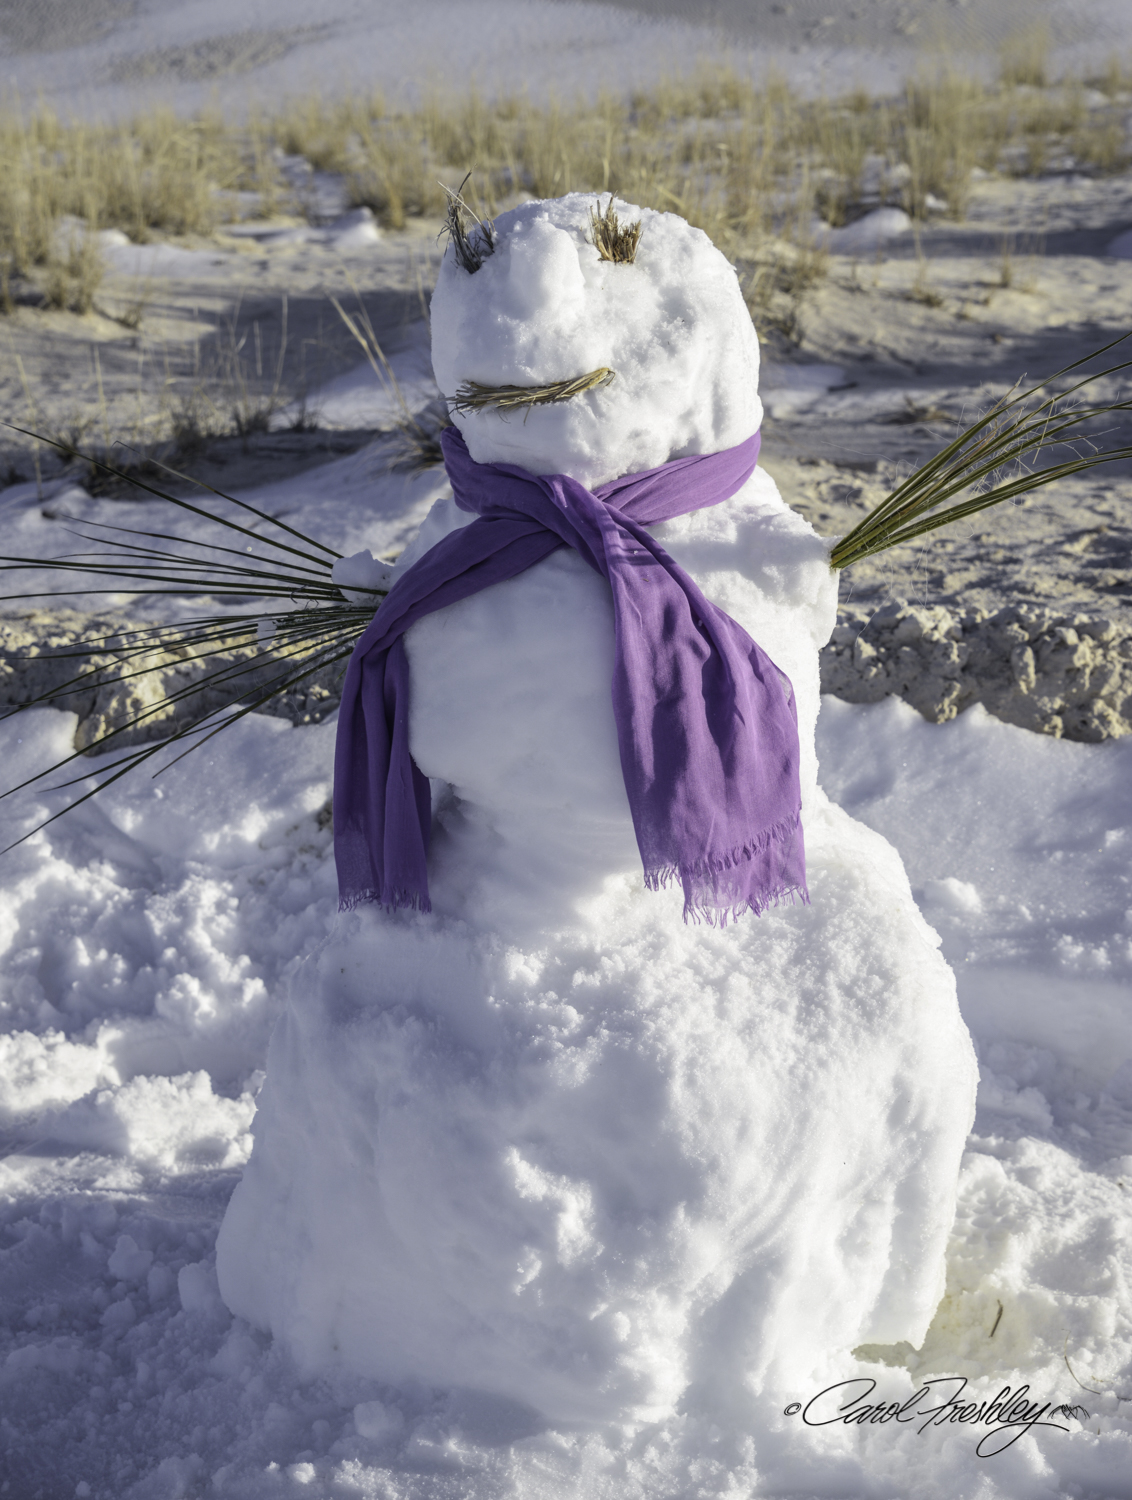 There were snow men being built all over the place. I counted six. But this one was the most impressive. I watched the family build it. After they left I decided it was really a snow woman and put my scarf around her neck.